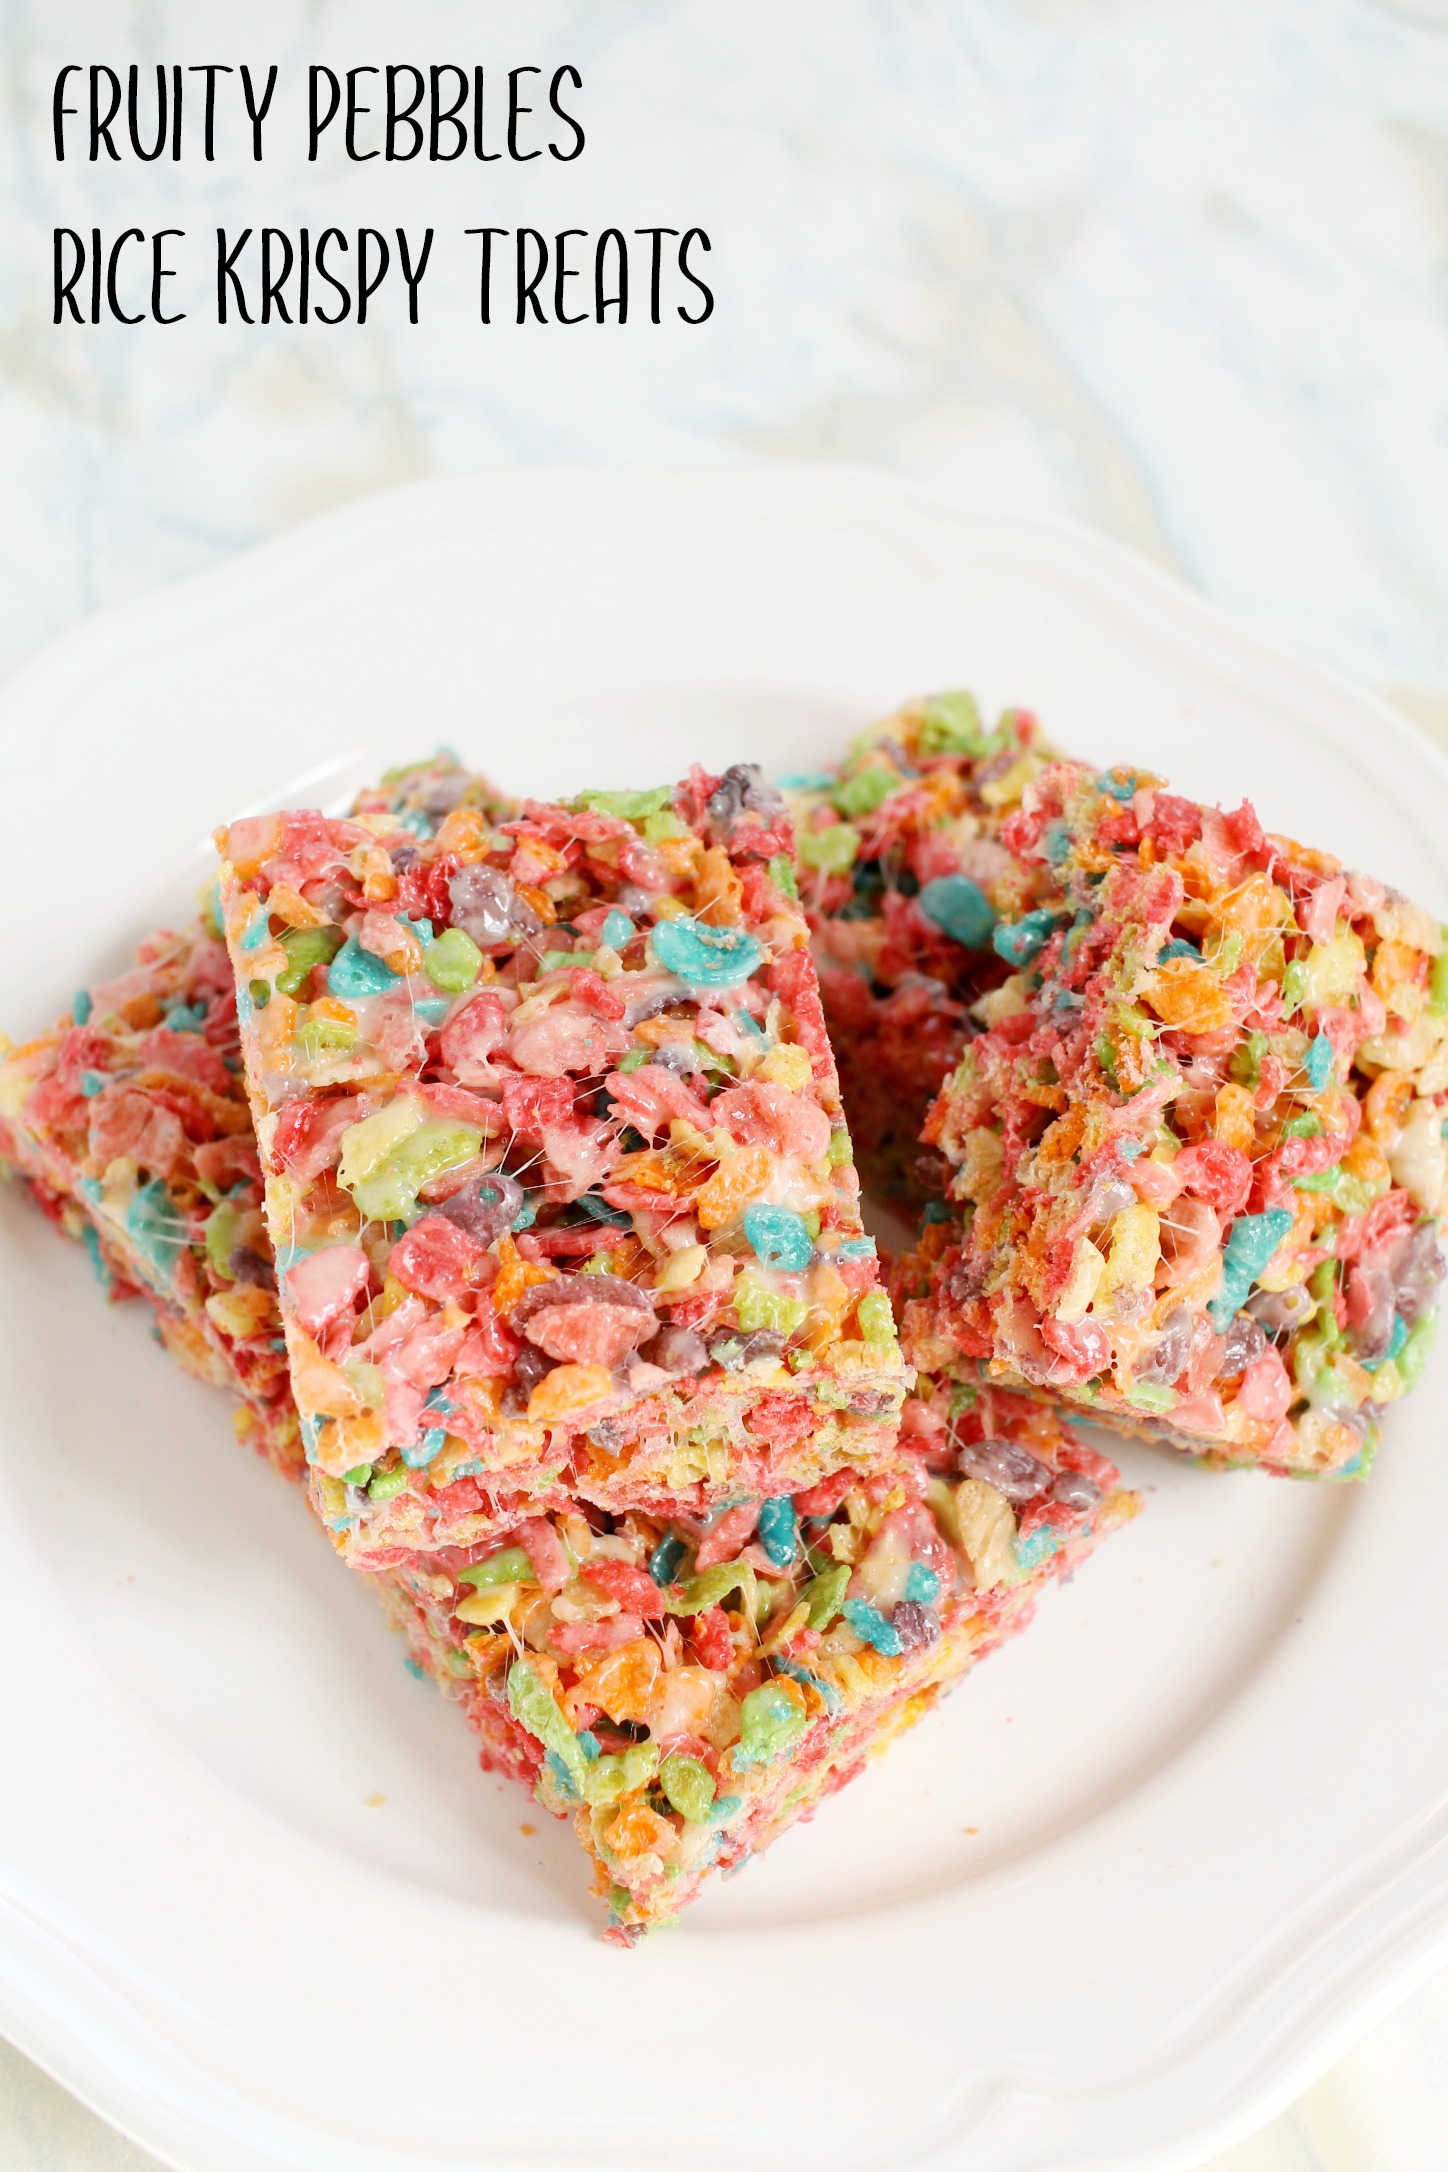 white plate with squares of fruity pebbles rice krispies